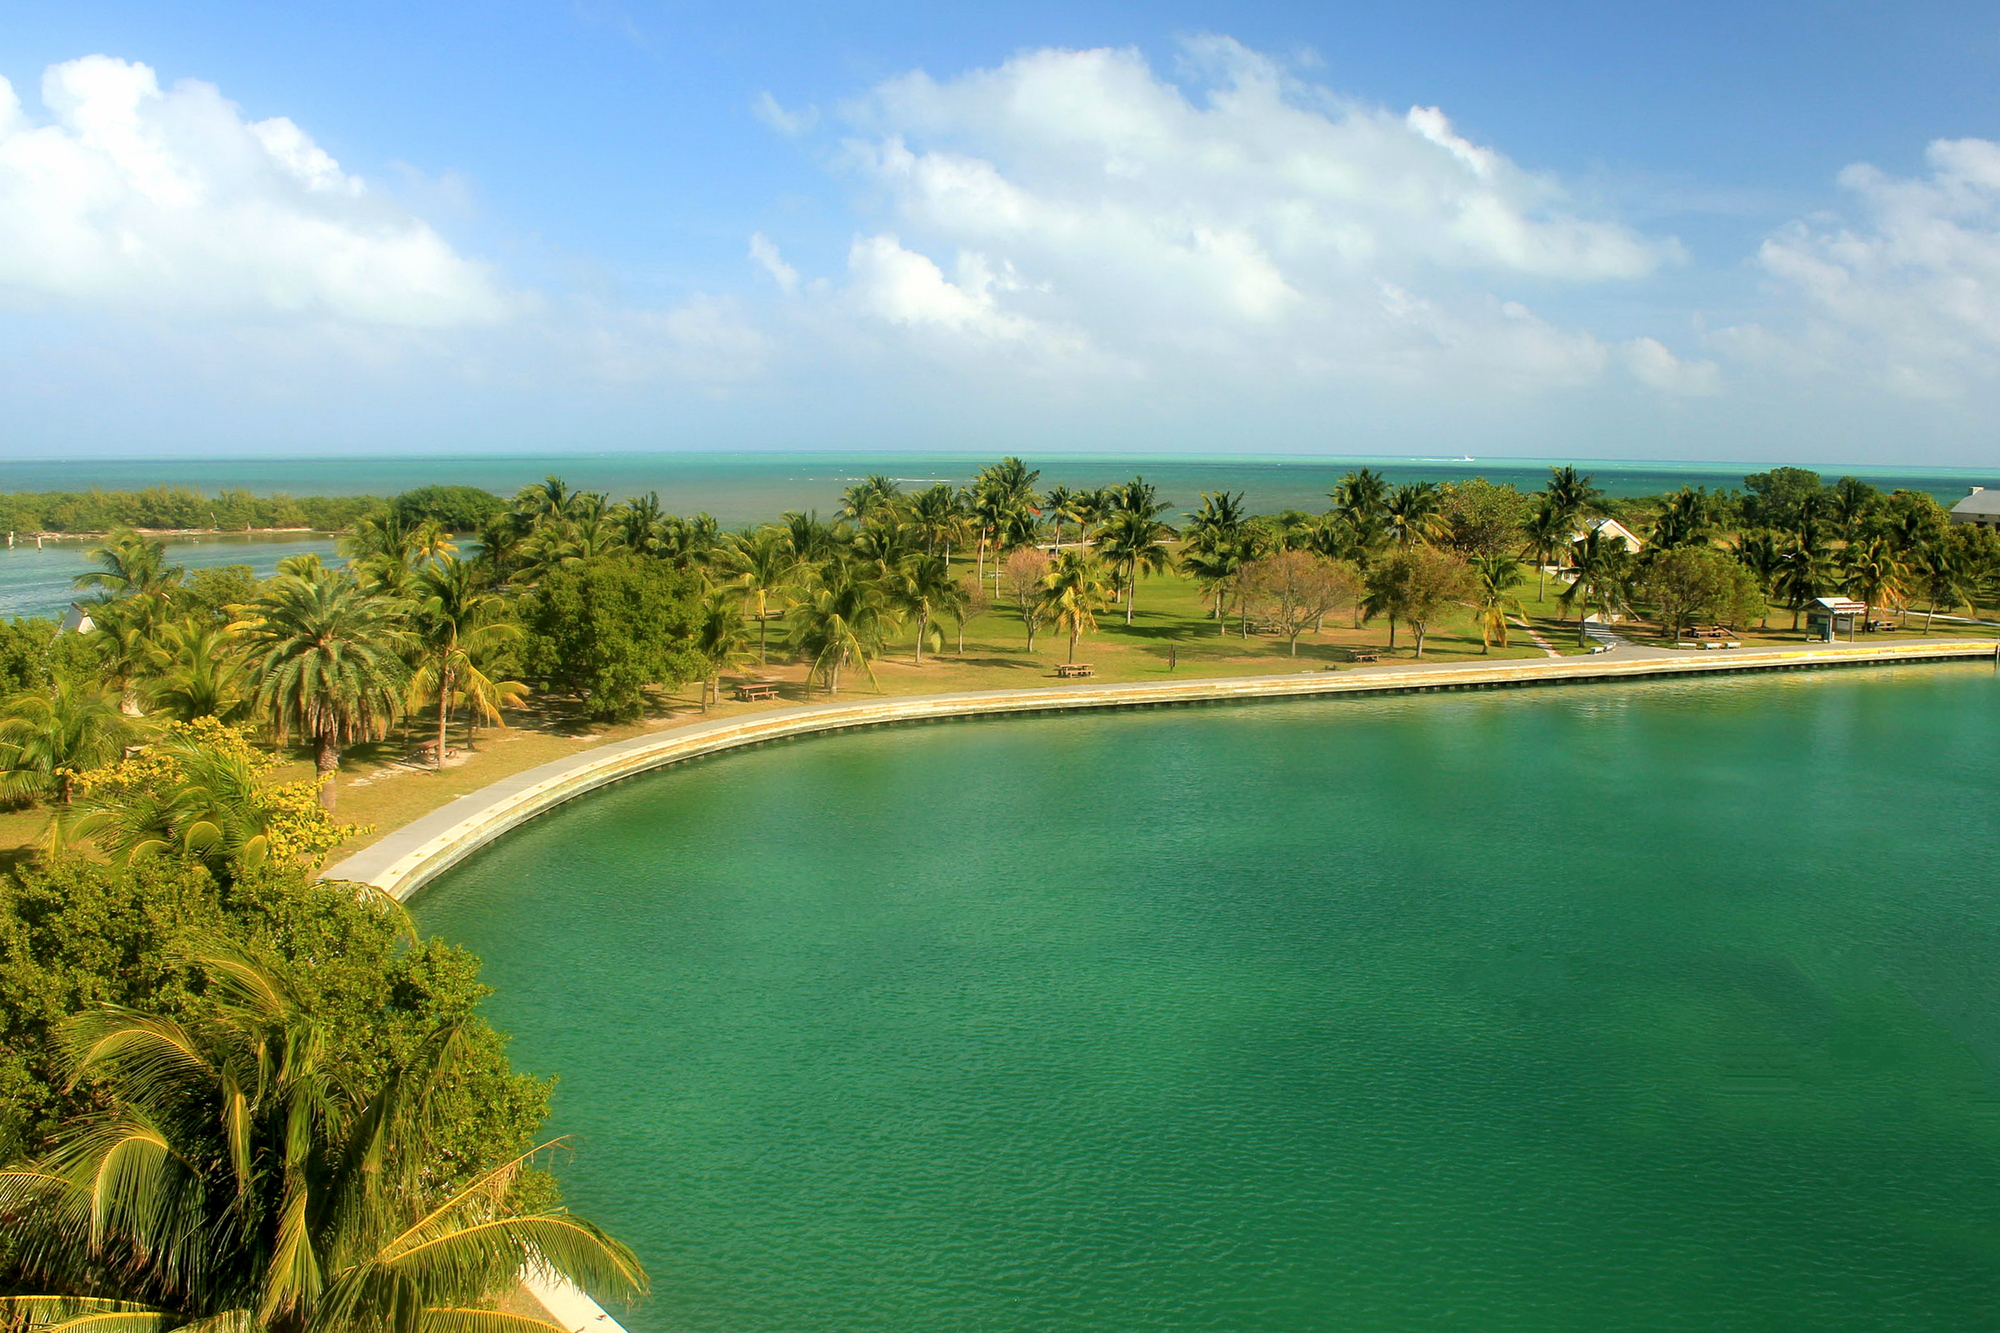 Hikes in Miami - Biscayne National Park